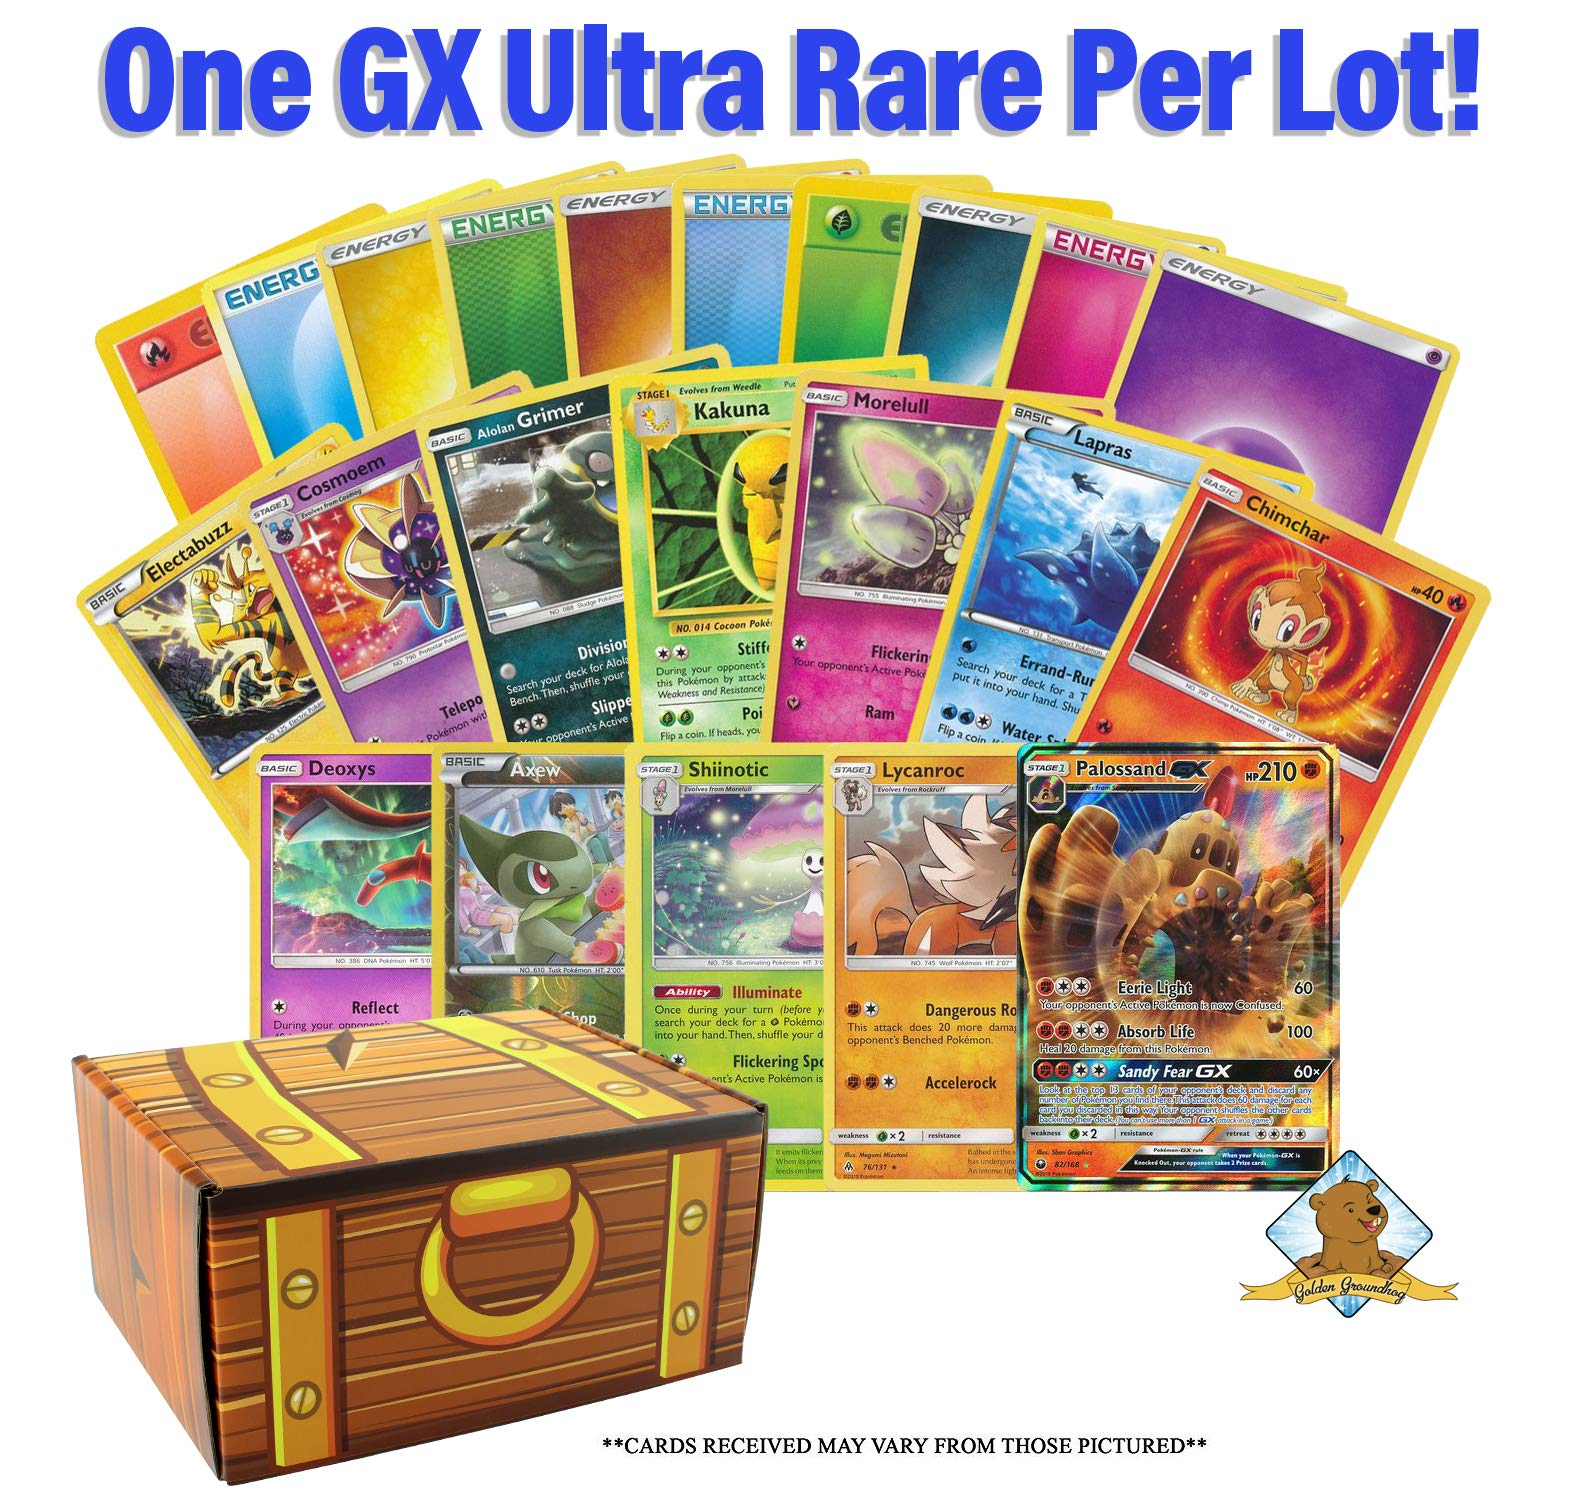 Box of Pokemon Cards Lot - 300 Pokemon Cards in Total - 200 Energy - 100 Pokemon Cards - Trainers - Rares - Foils - GX - Holos! Includes Golden Groundhog Treasure Chest Storage Box!